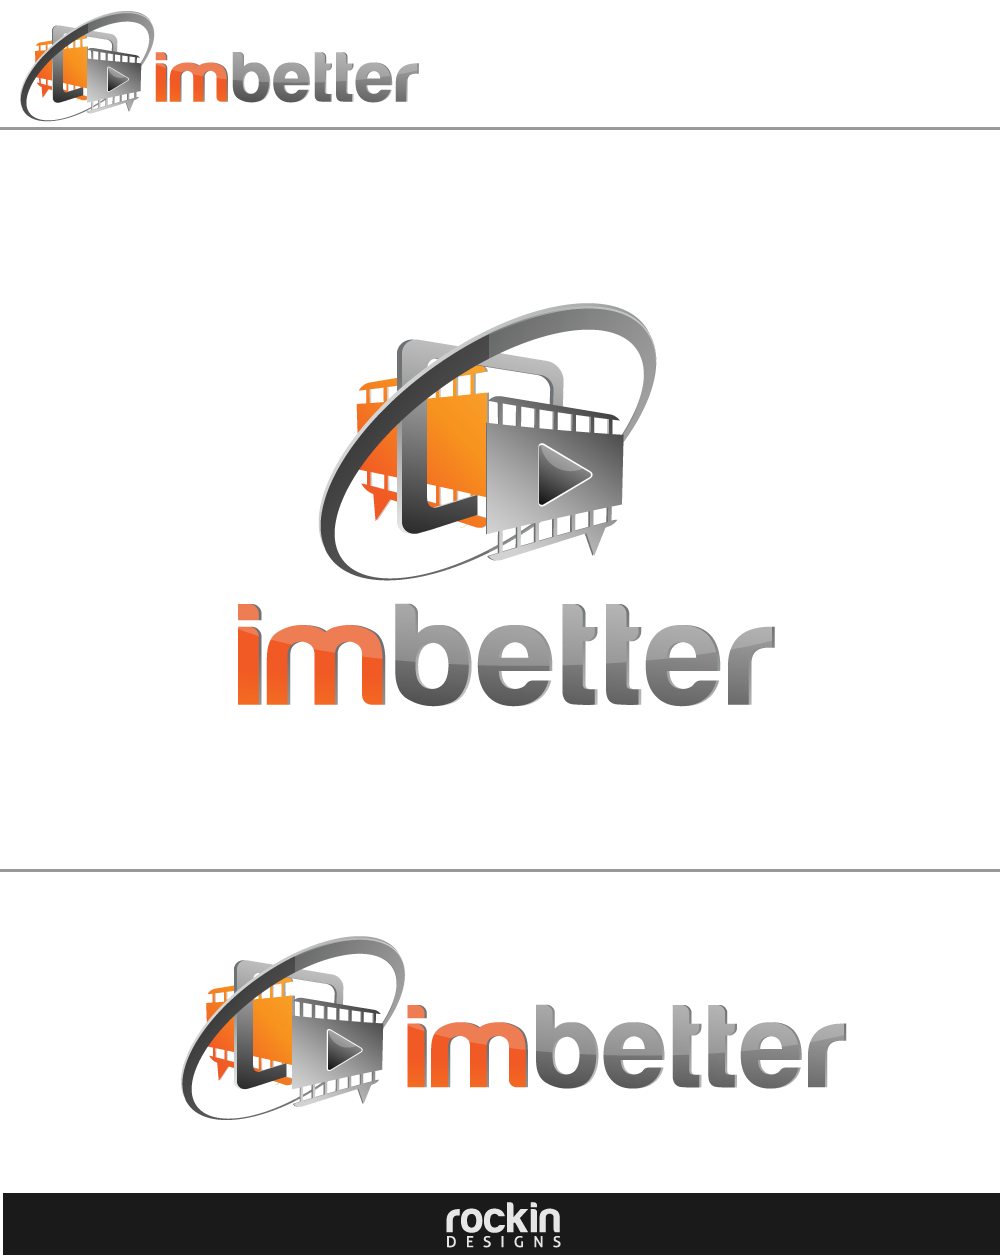 Logo Design by rockin - Entry No. 132 in the Logo Design Contest Imaginative Logo Design for imbetter.